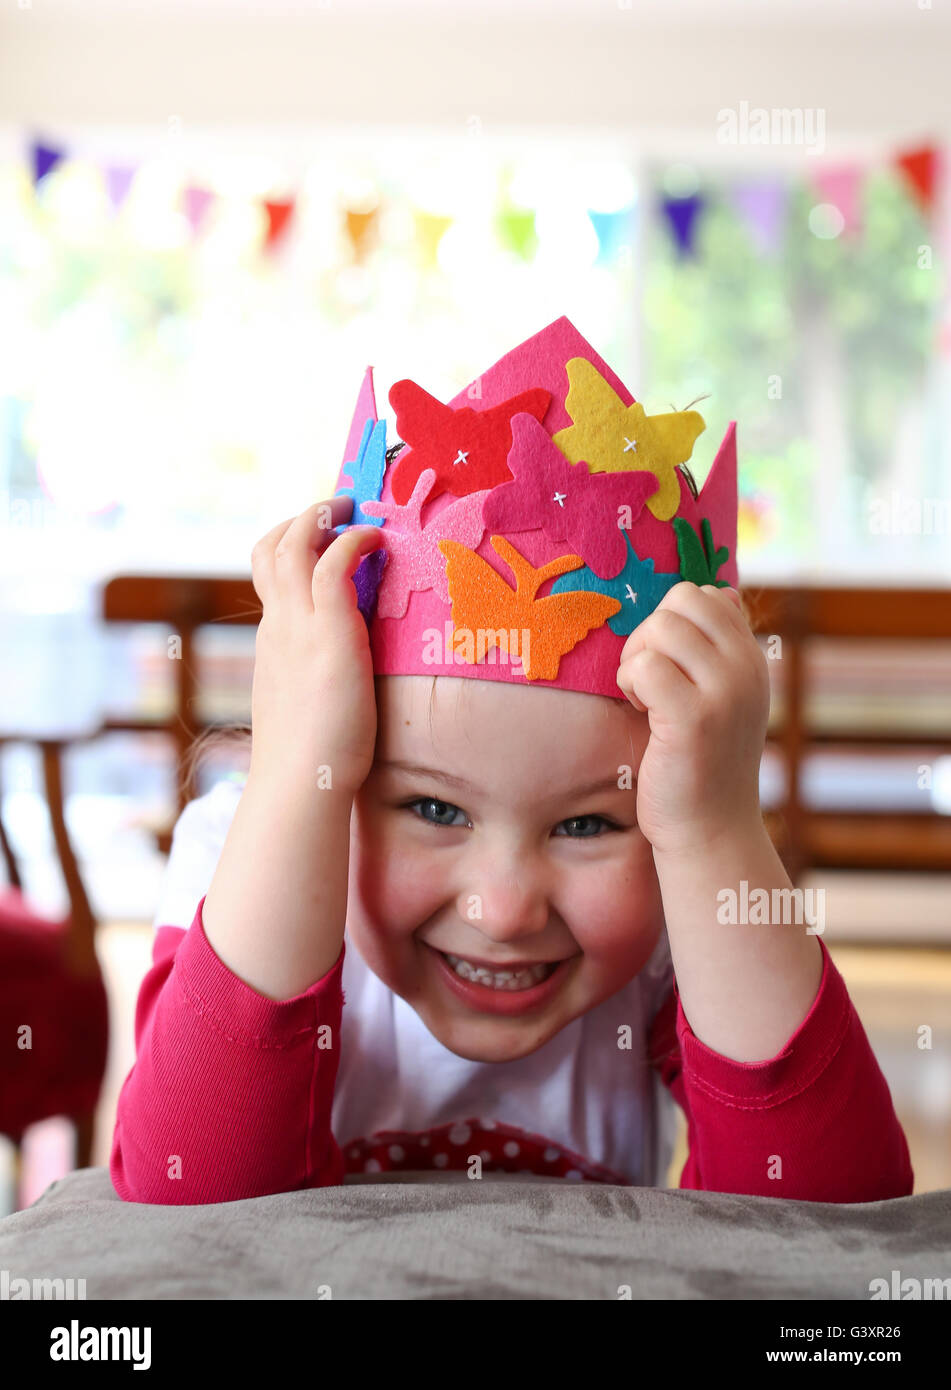 Child with party hat being silly Stock Photo